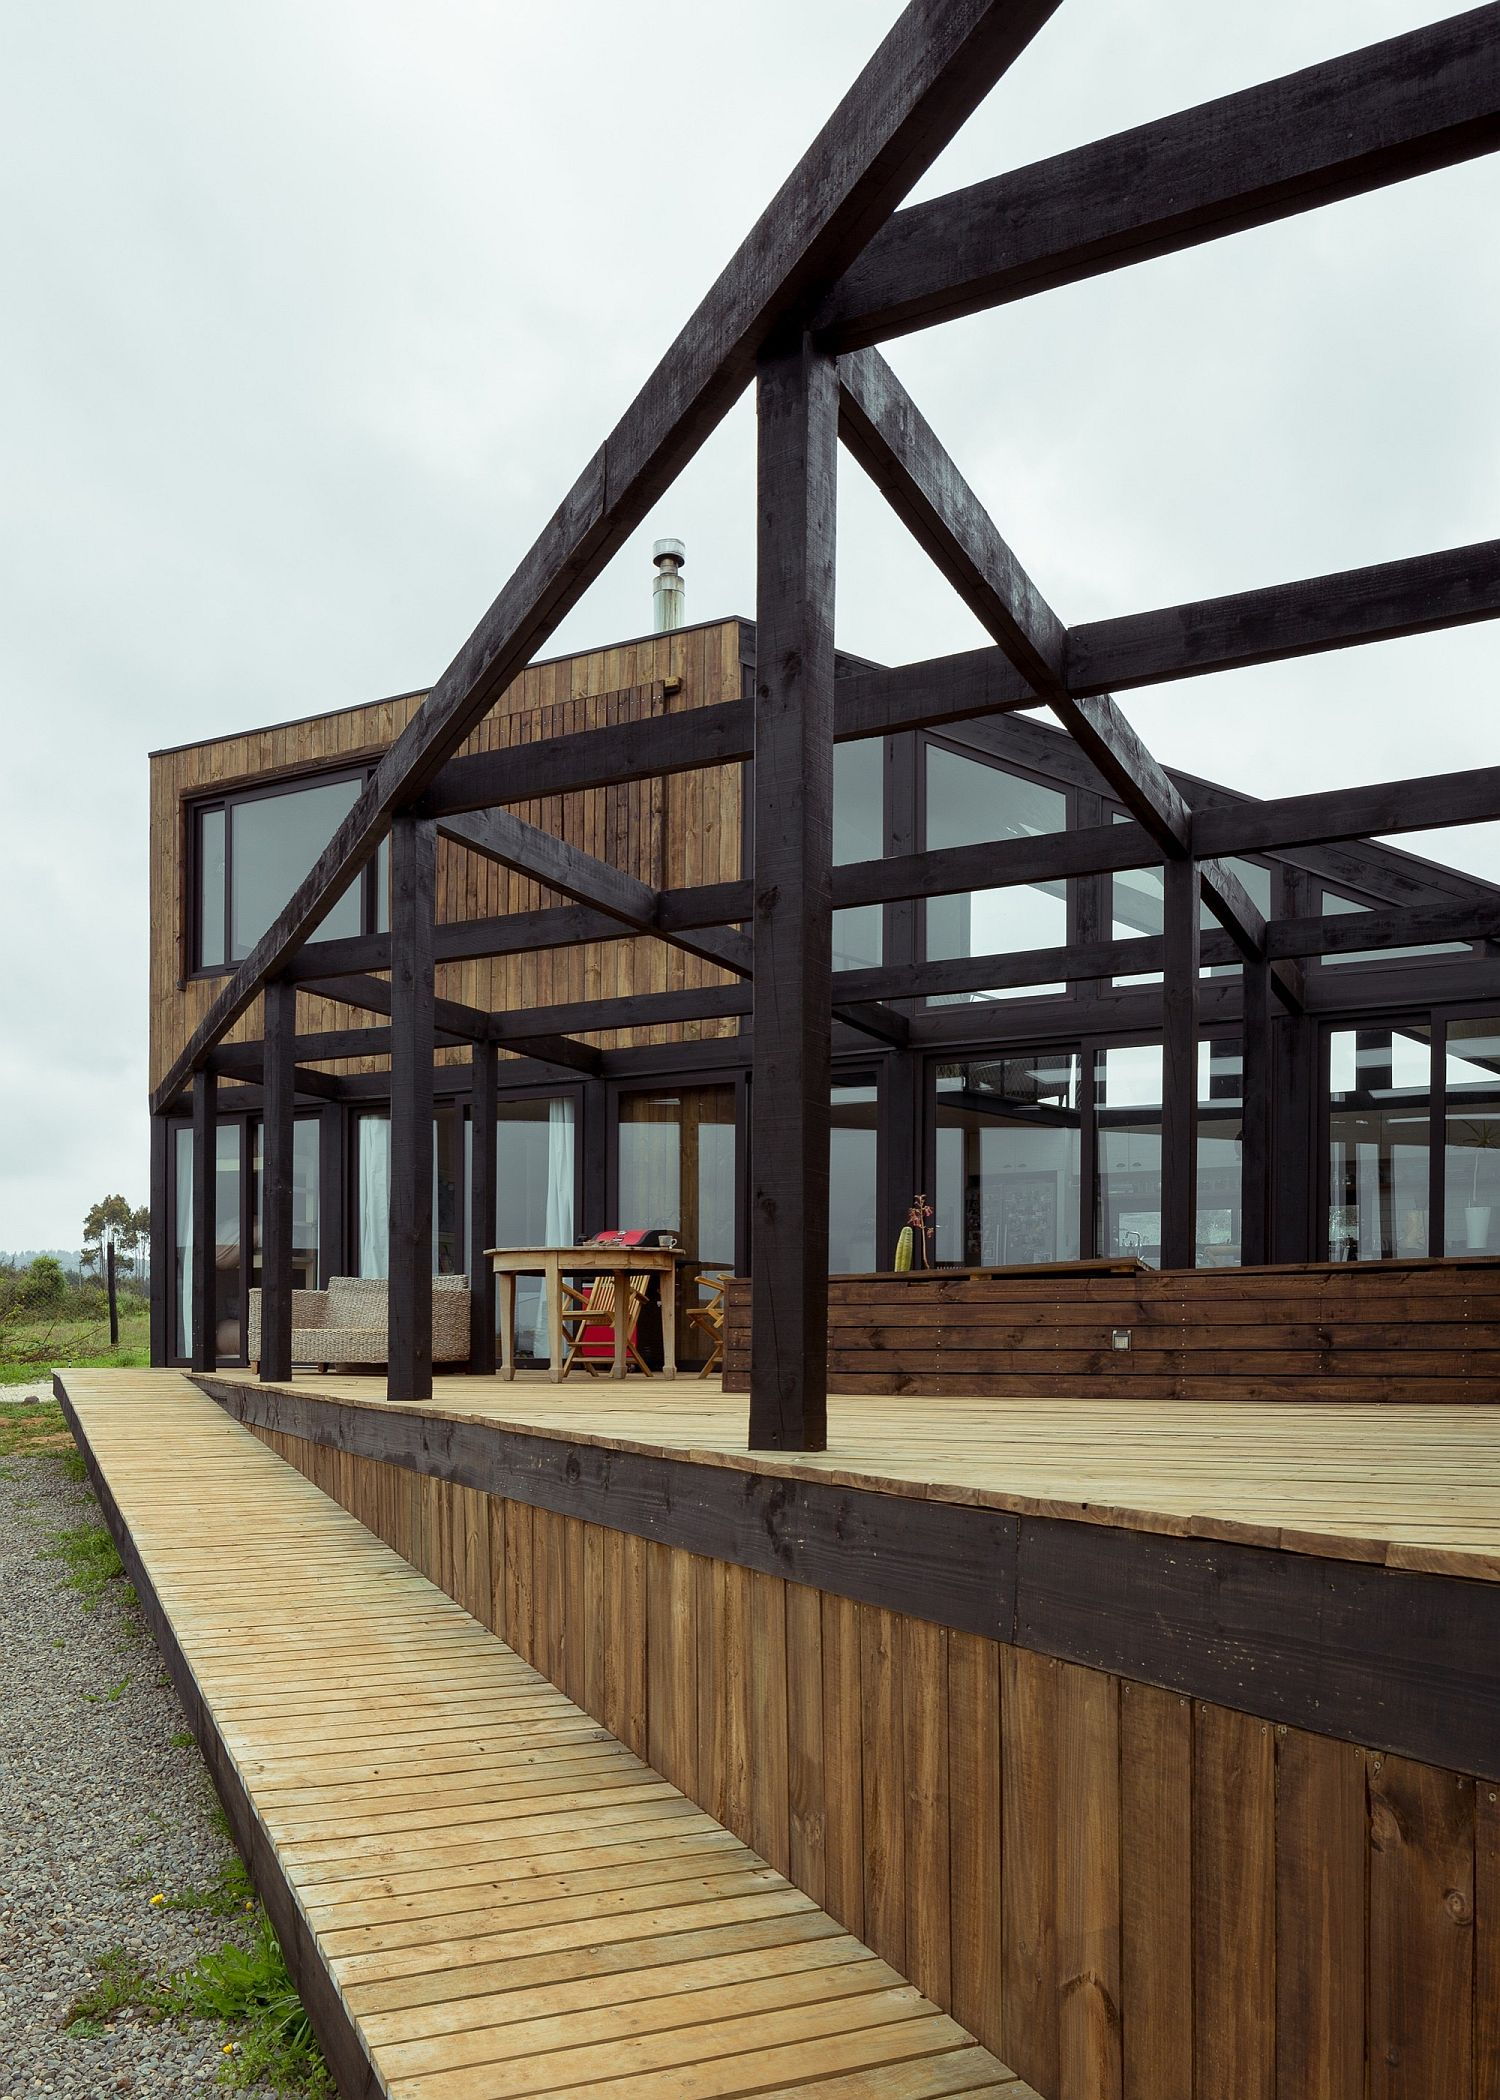 Stuctural-metal-beams-create-a-support-for-the-outdoor-courtyard